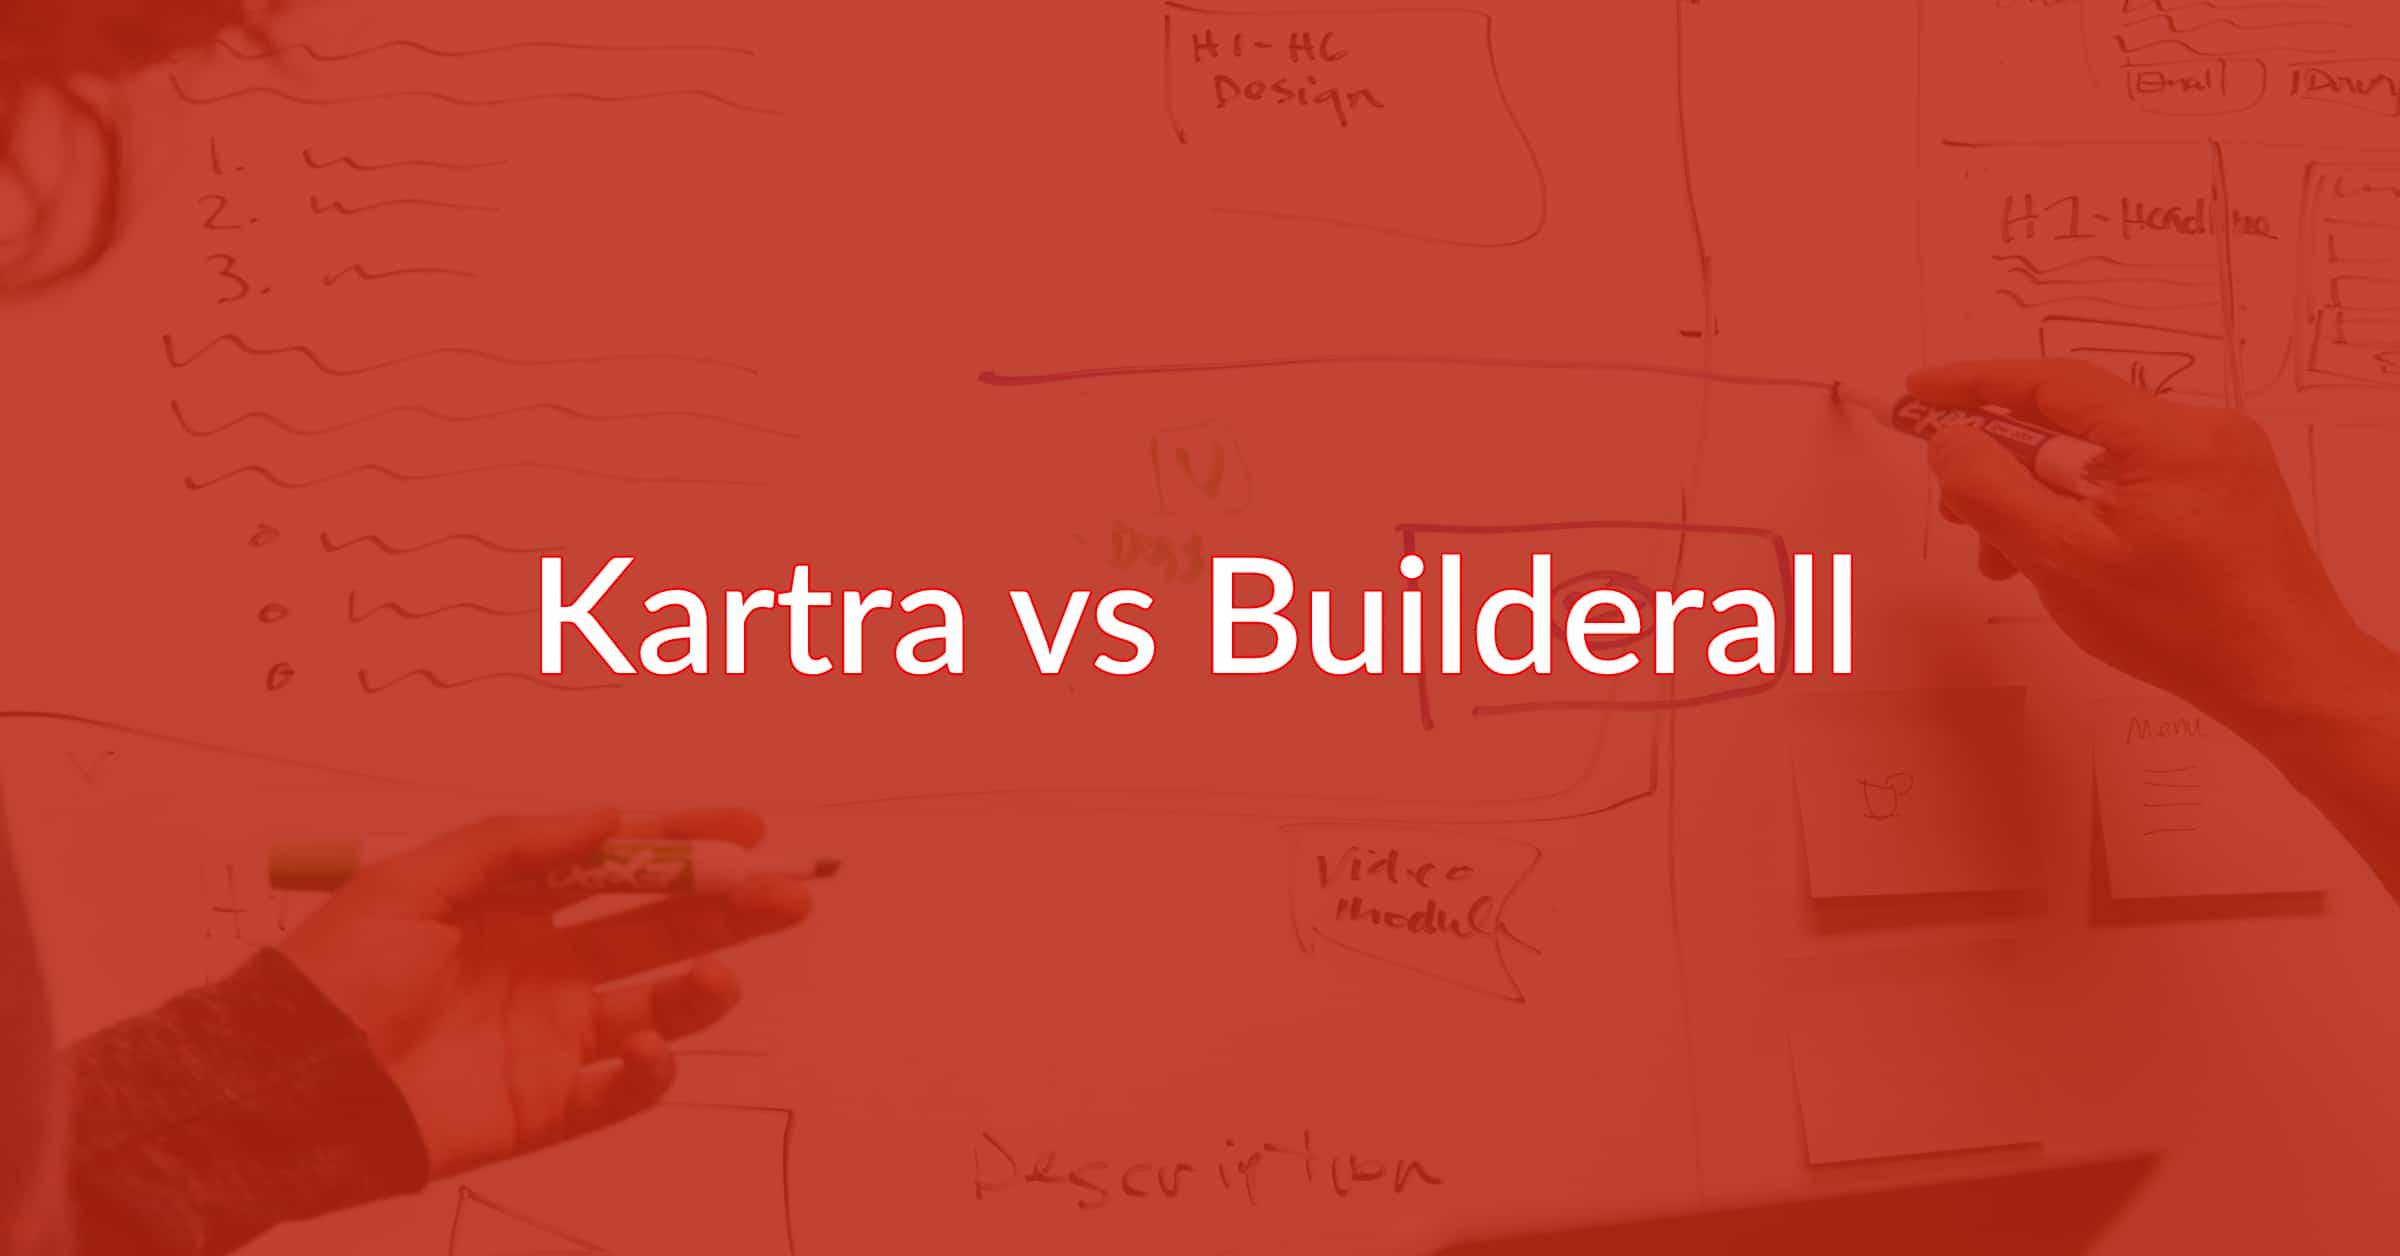 Kartra vs Builderall: Which All-In-One Platform Is Best?